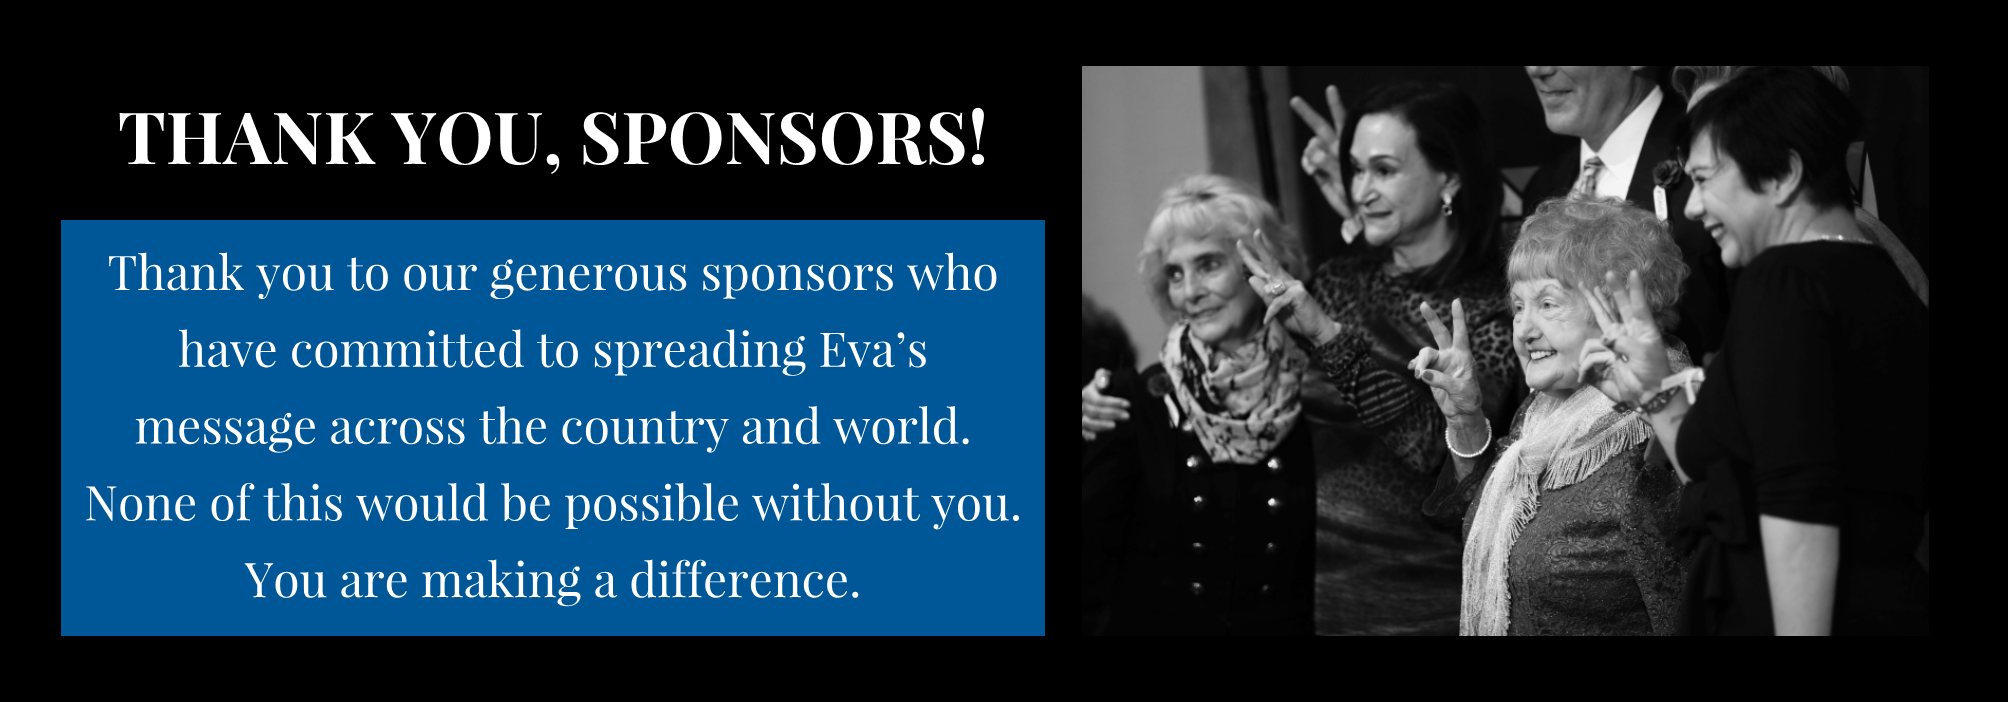 THANK YOU, SPONSORS! Thank you to our generous sponsors who have committed to spreading Eva's message across the country and world. None of this would be possible without you. You are making a difference.